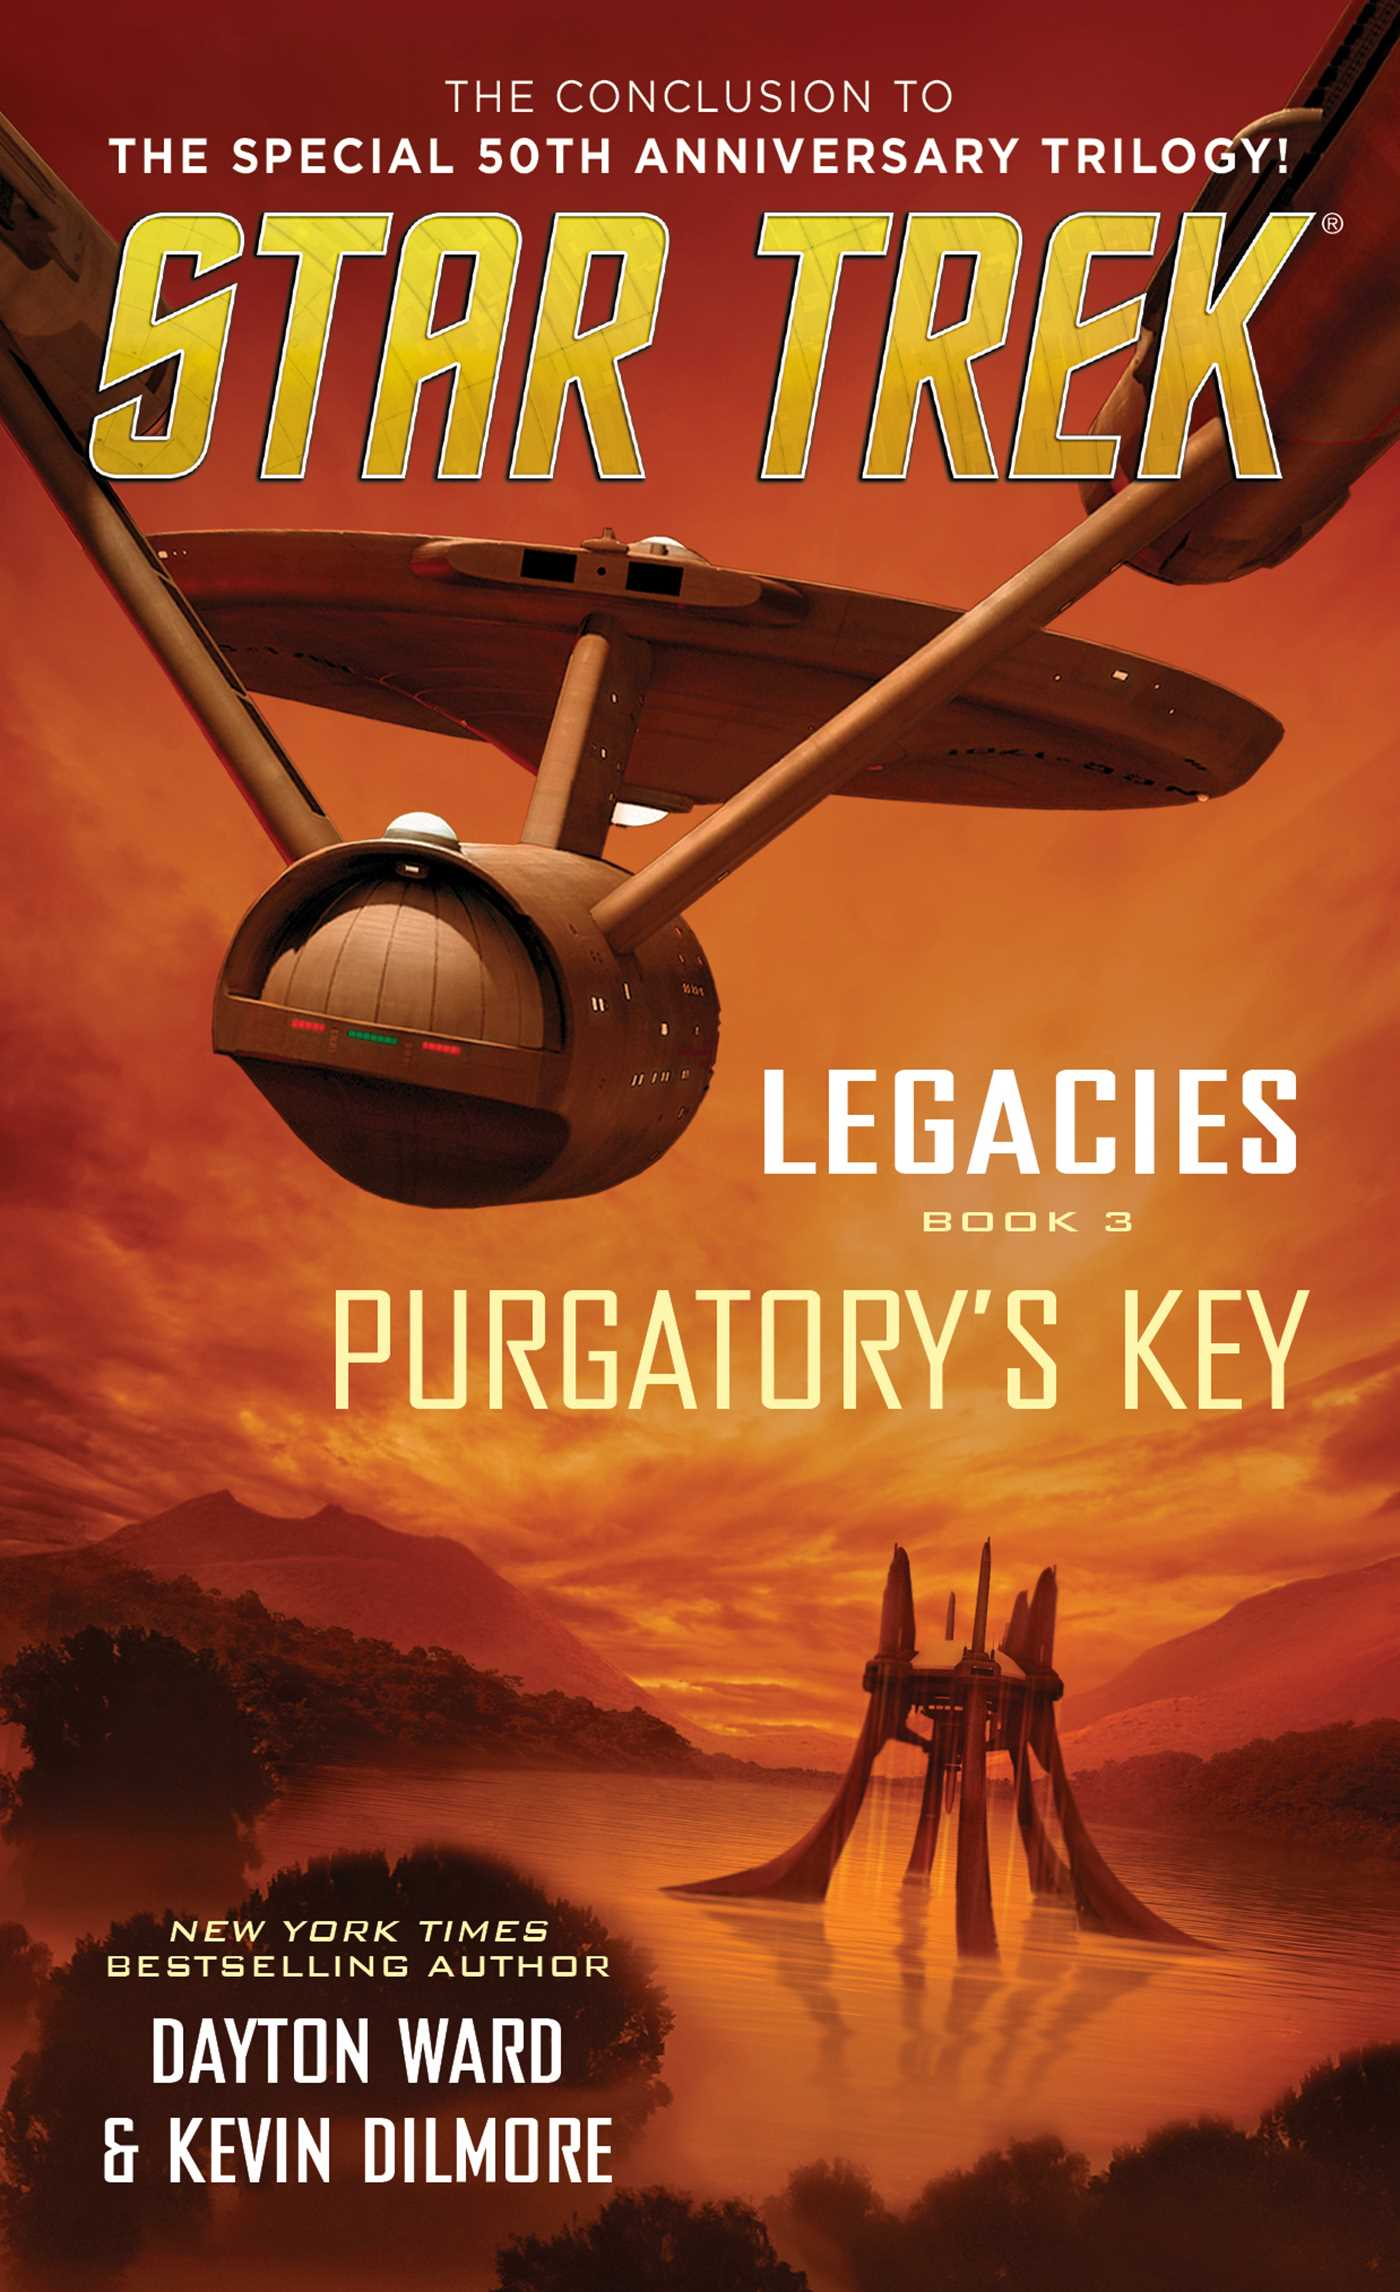 Legacies book 3 purgatorys key 9781501122774 hr